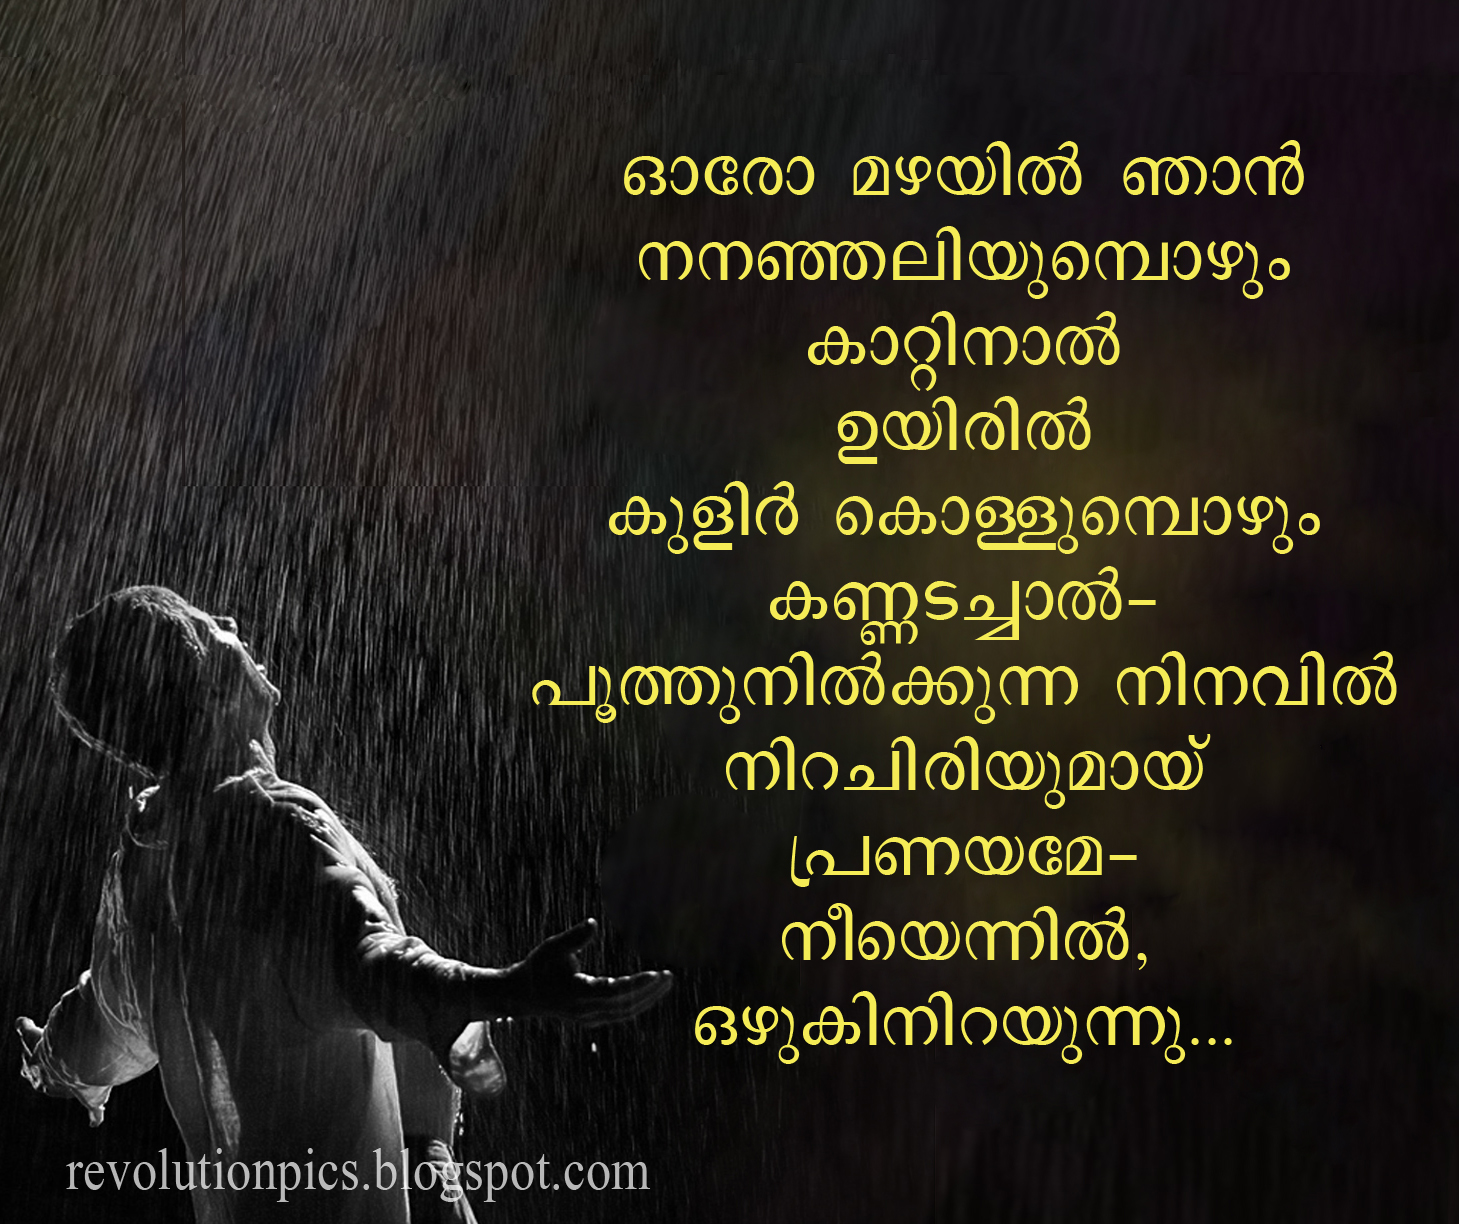 Malayalam Love Quotes Love Quotes Of Kamala Das  The Quotes Of Mother Teresa